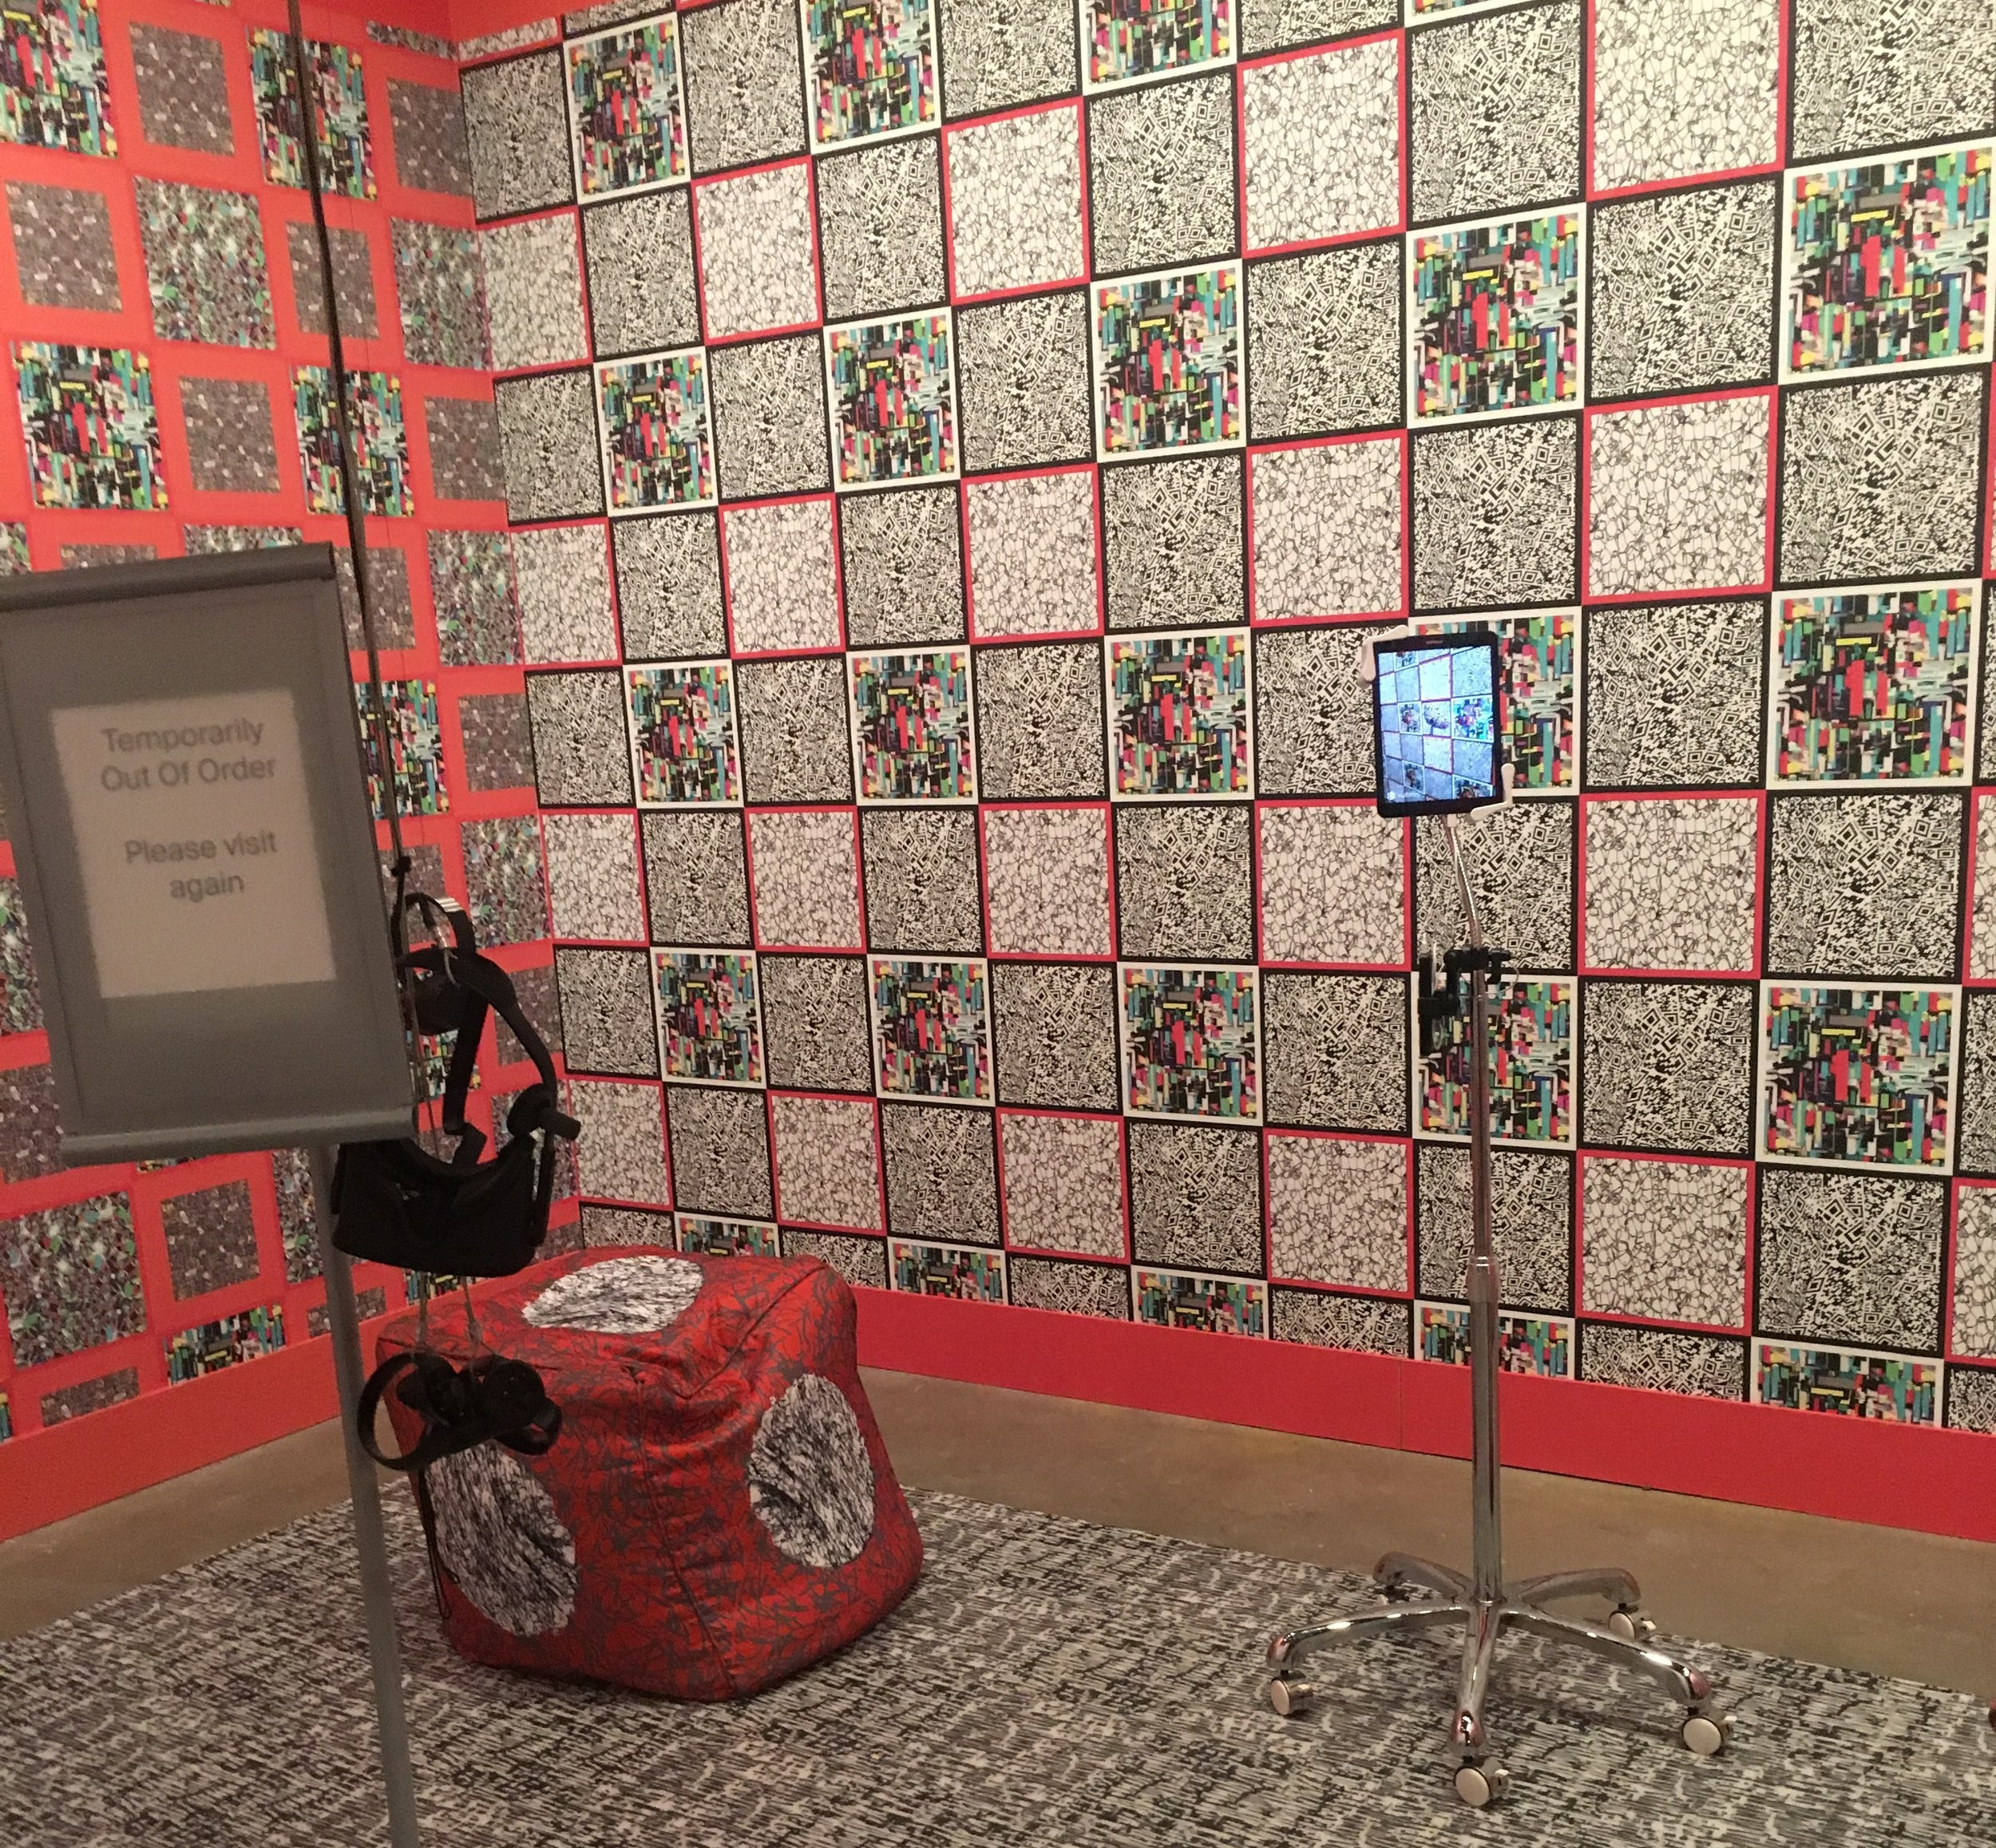 Interactive work from the Paradox exhibit.